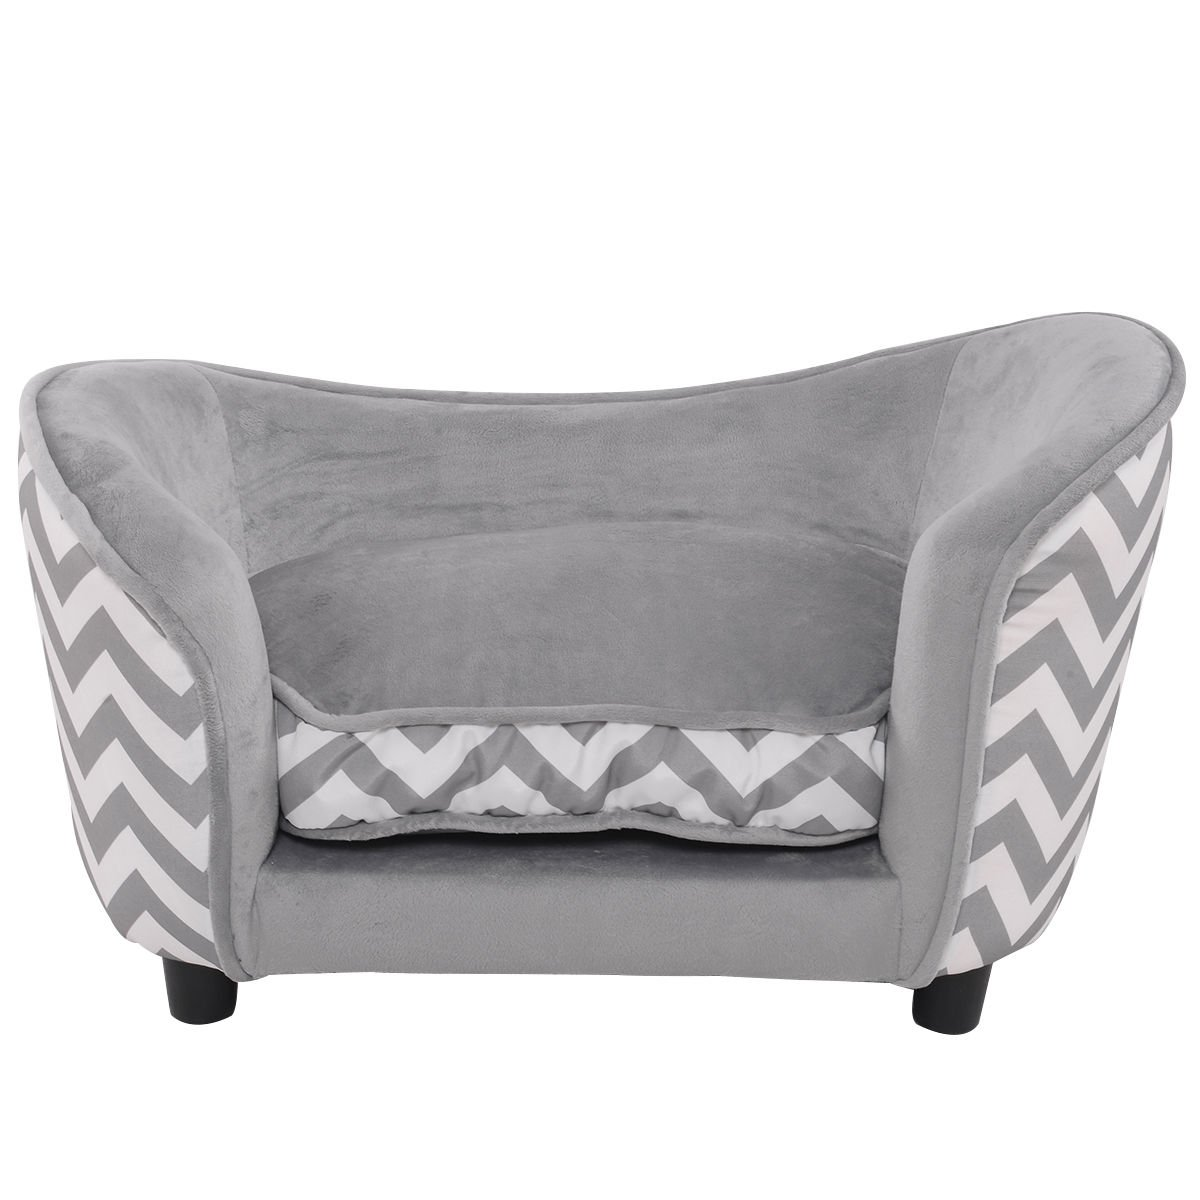 Giantex Pet Sofa Ultra Plush Lounge Sofa Bed Comfortable Puppy Cat Dog Sleeping Sofa Snuggle Couch Pet Bed with Cushion, Gray